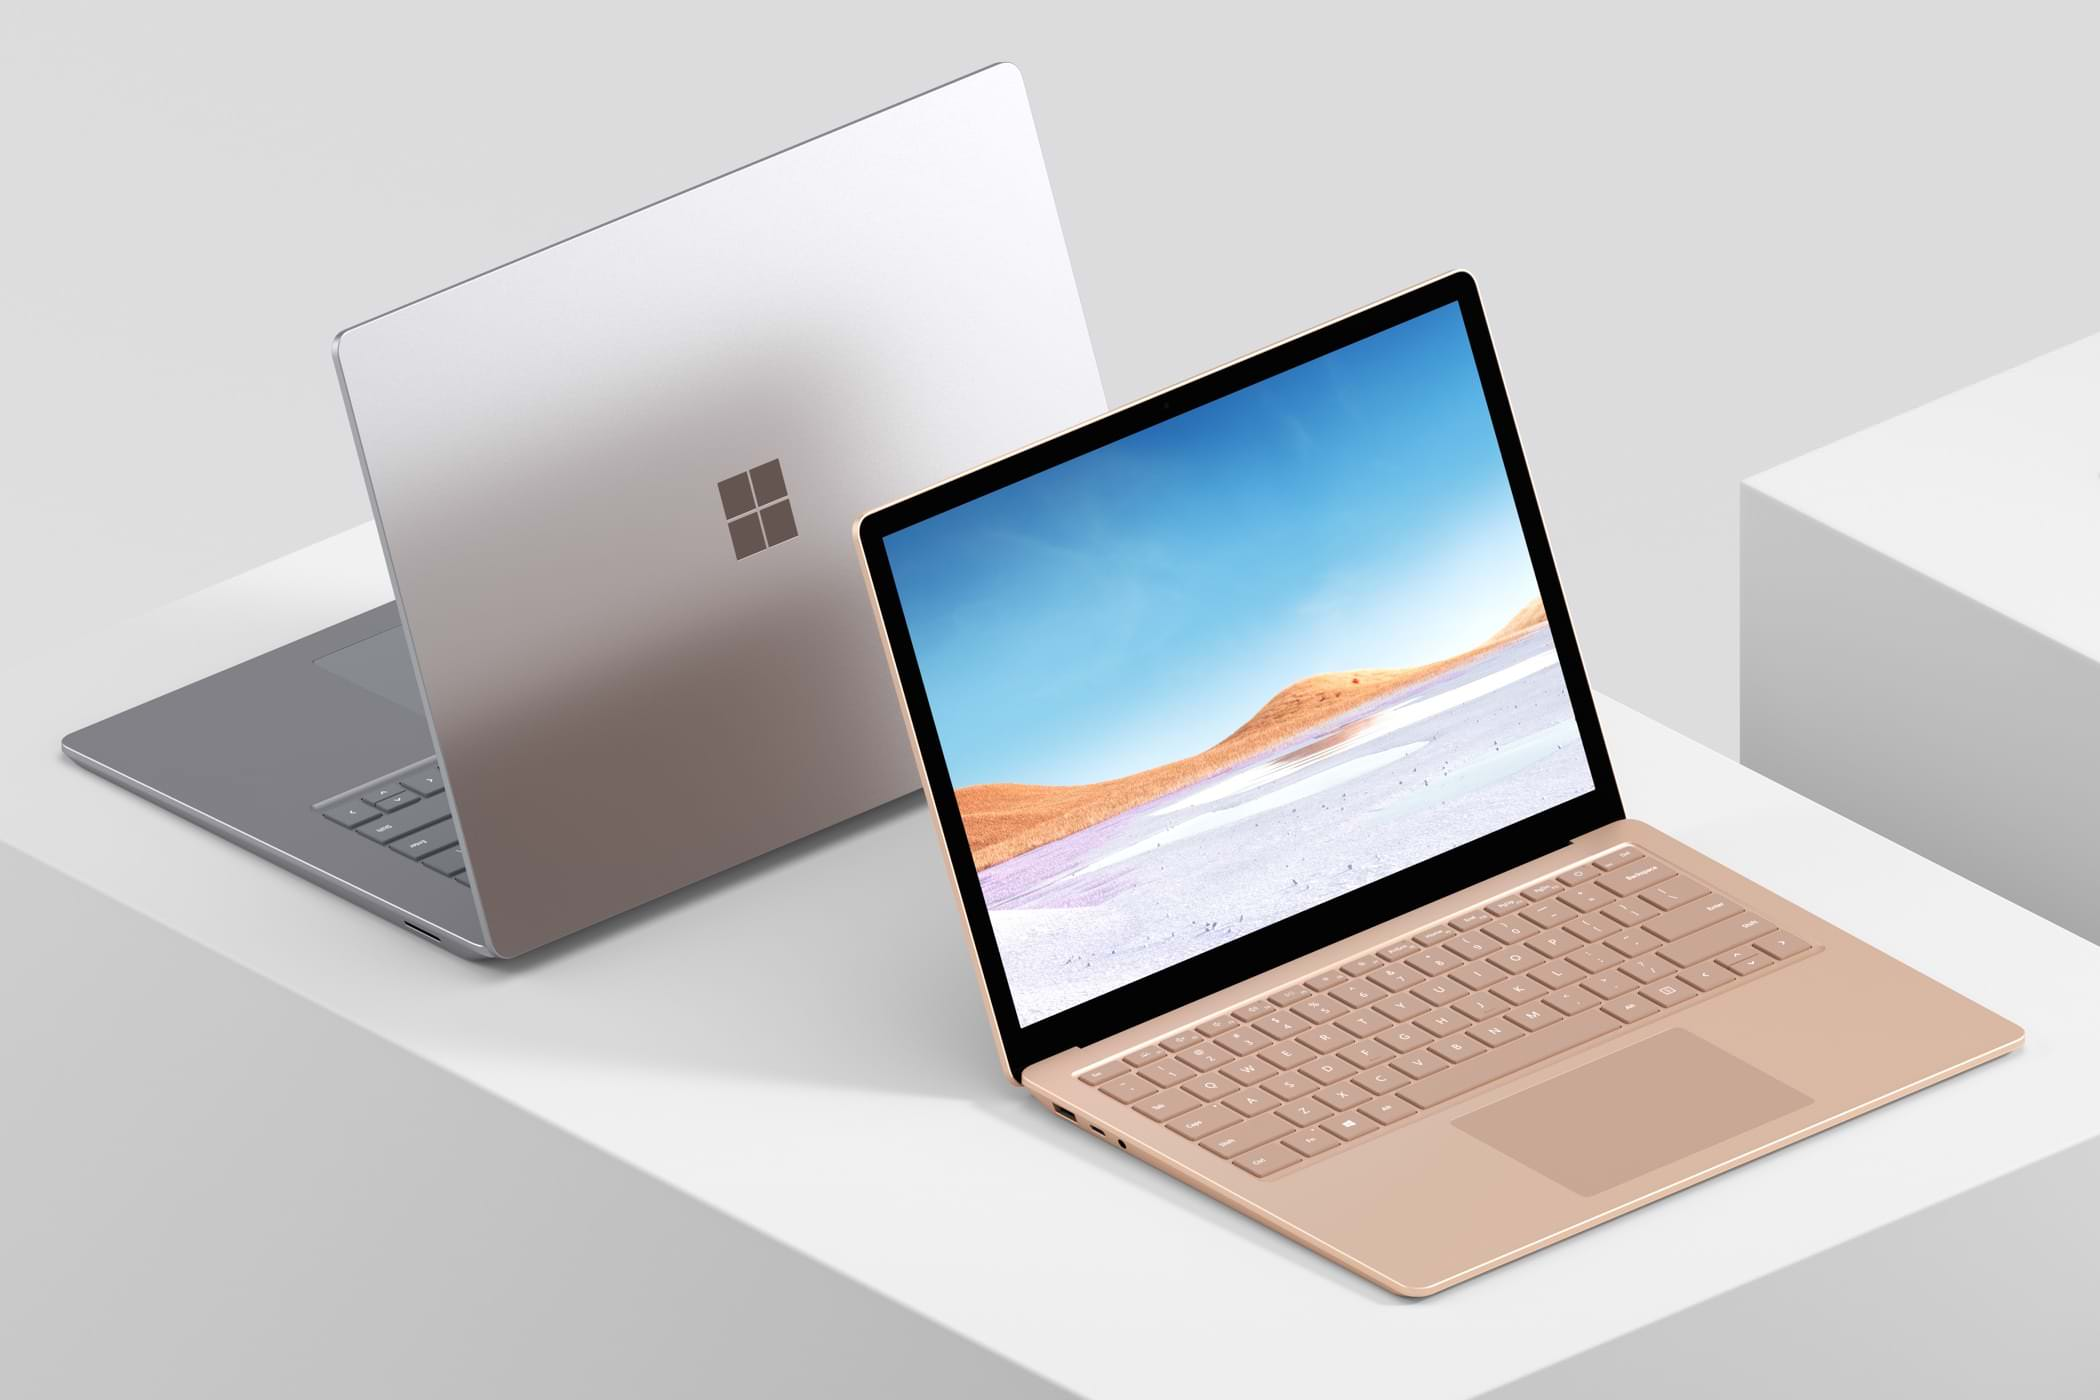 Microsoft представила ноутбук Surface Laptop 3